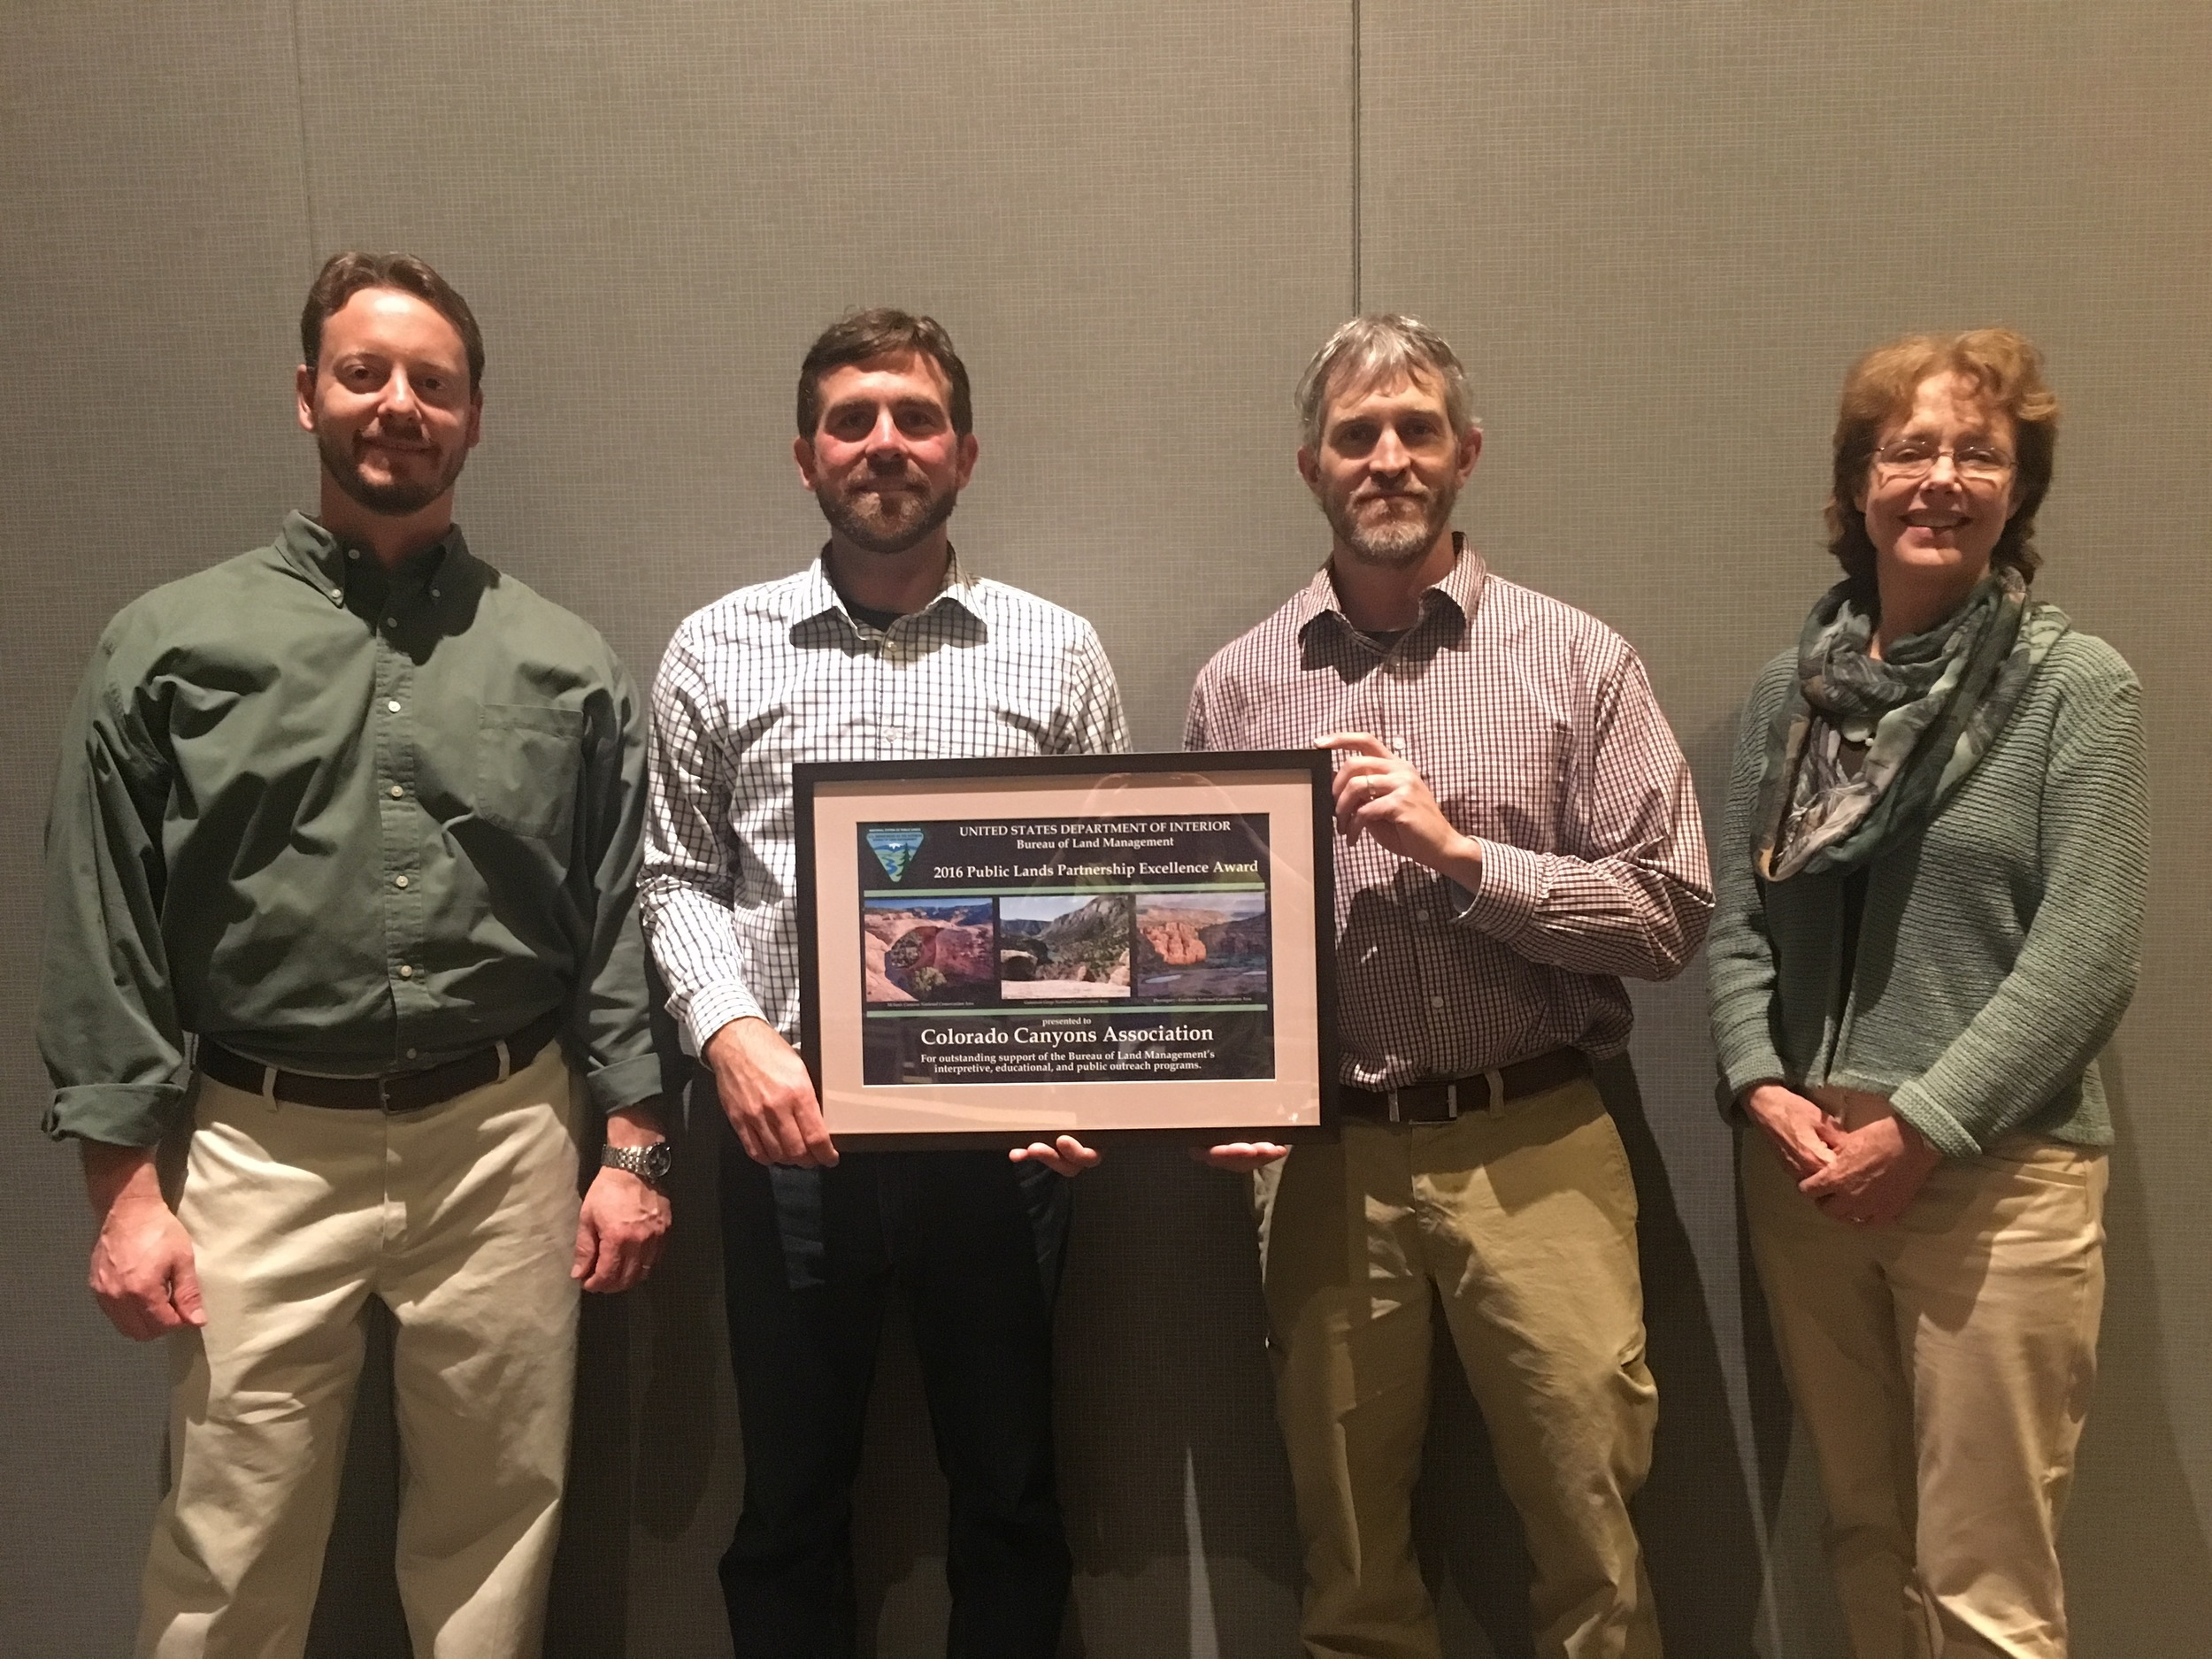 From left to right: Trevor Needham -BLM National Partnerships Coordinator, Joe Neuhof-CCA Executive Director, Collin Ewing -BLM National Conservation Area Manager, and Janet Ady -BLM Division Chief.